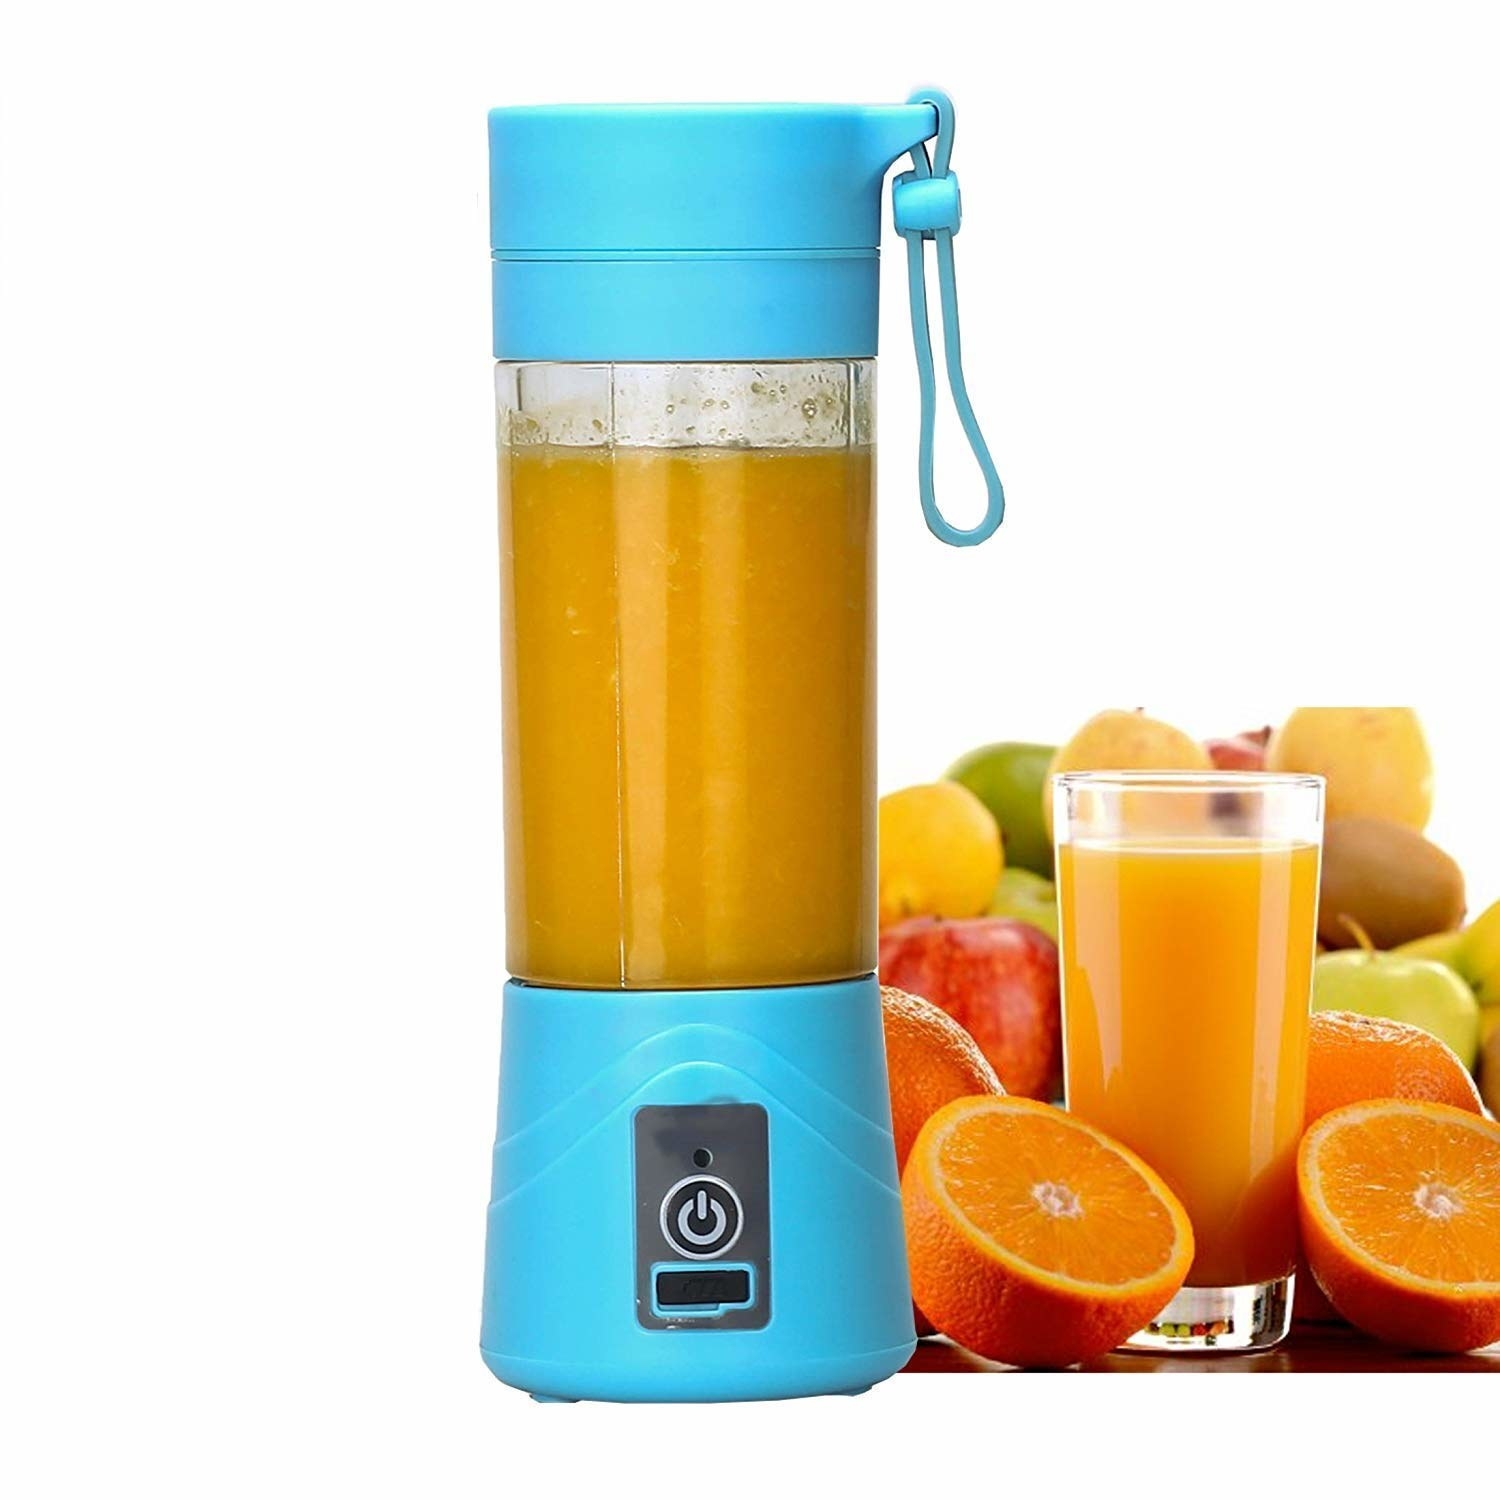 A blue GaxQuly Juicer and Blender filled with juice next to different fruits and a glass of juice